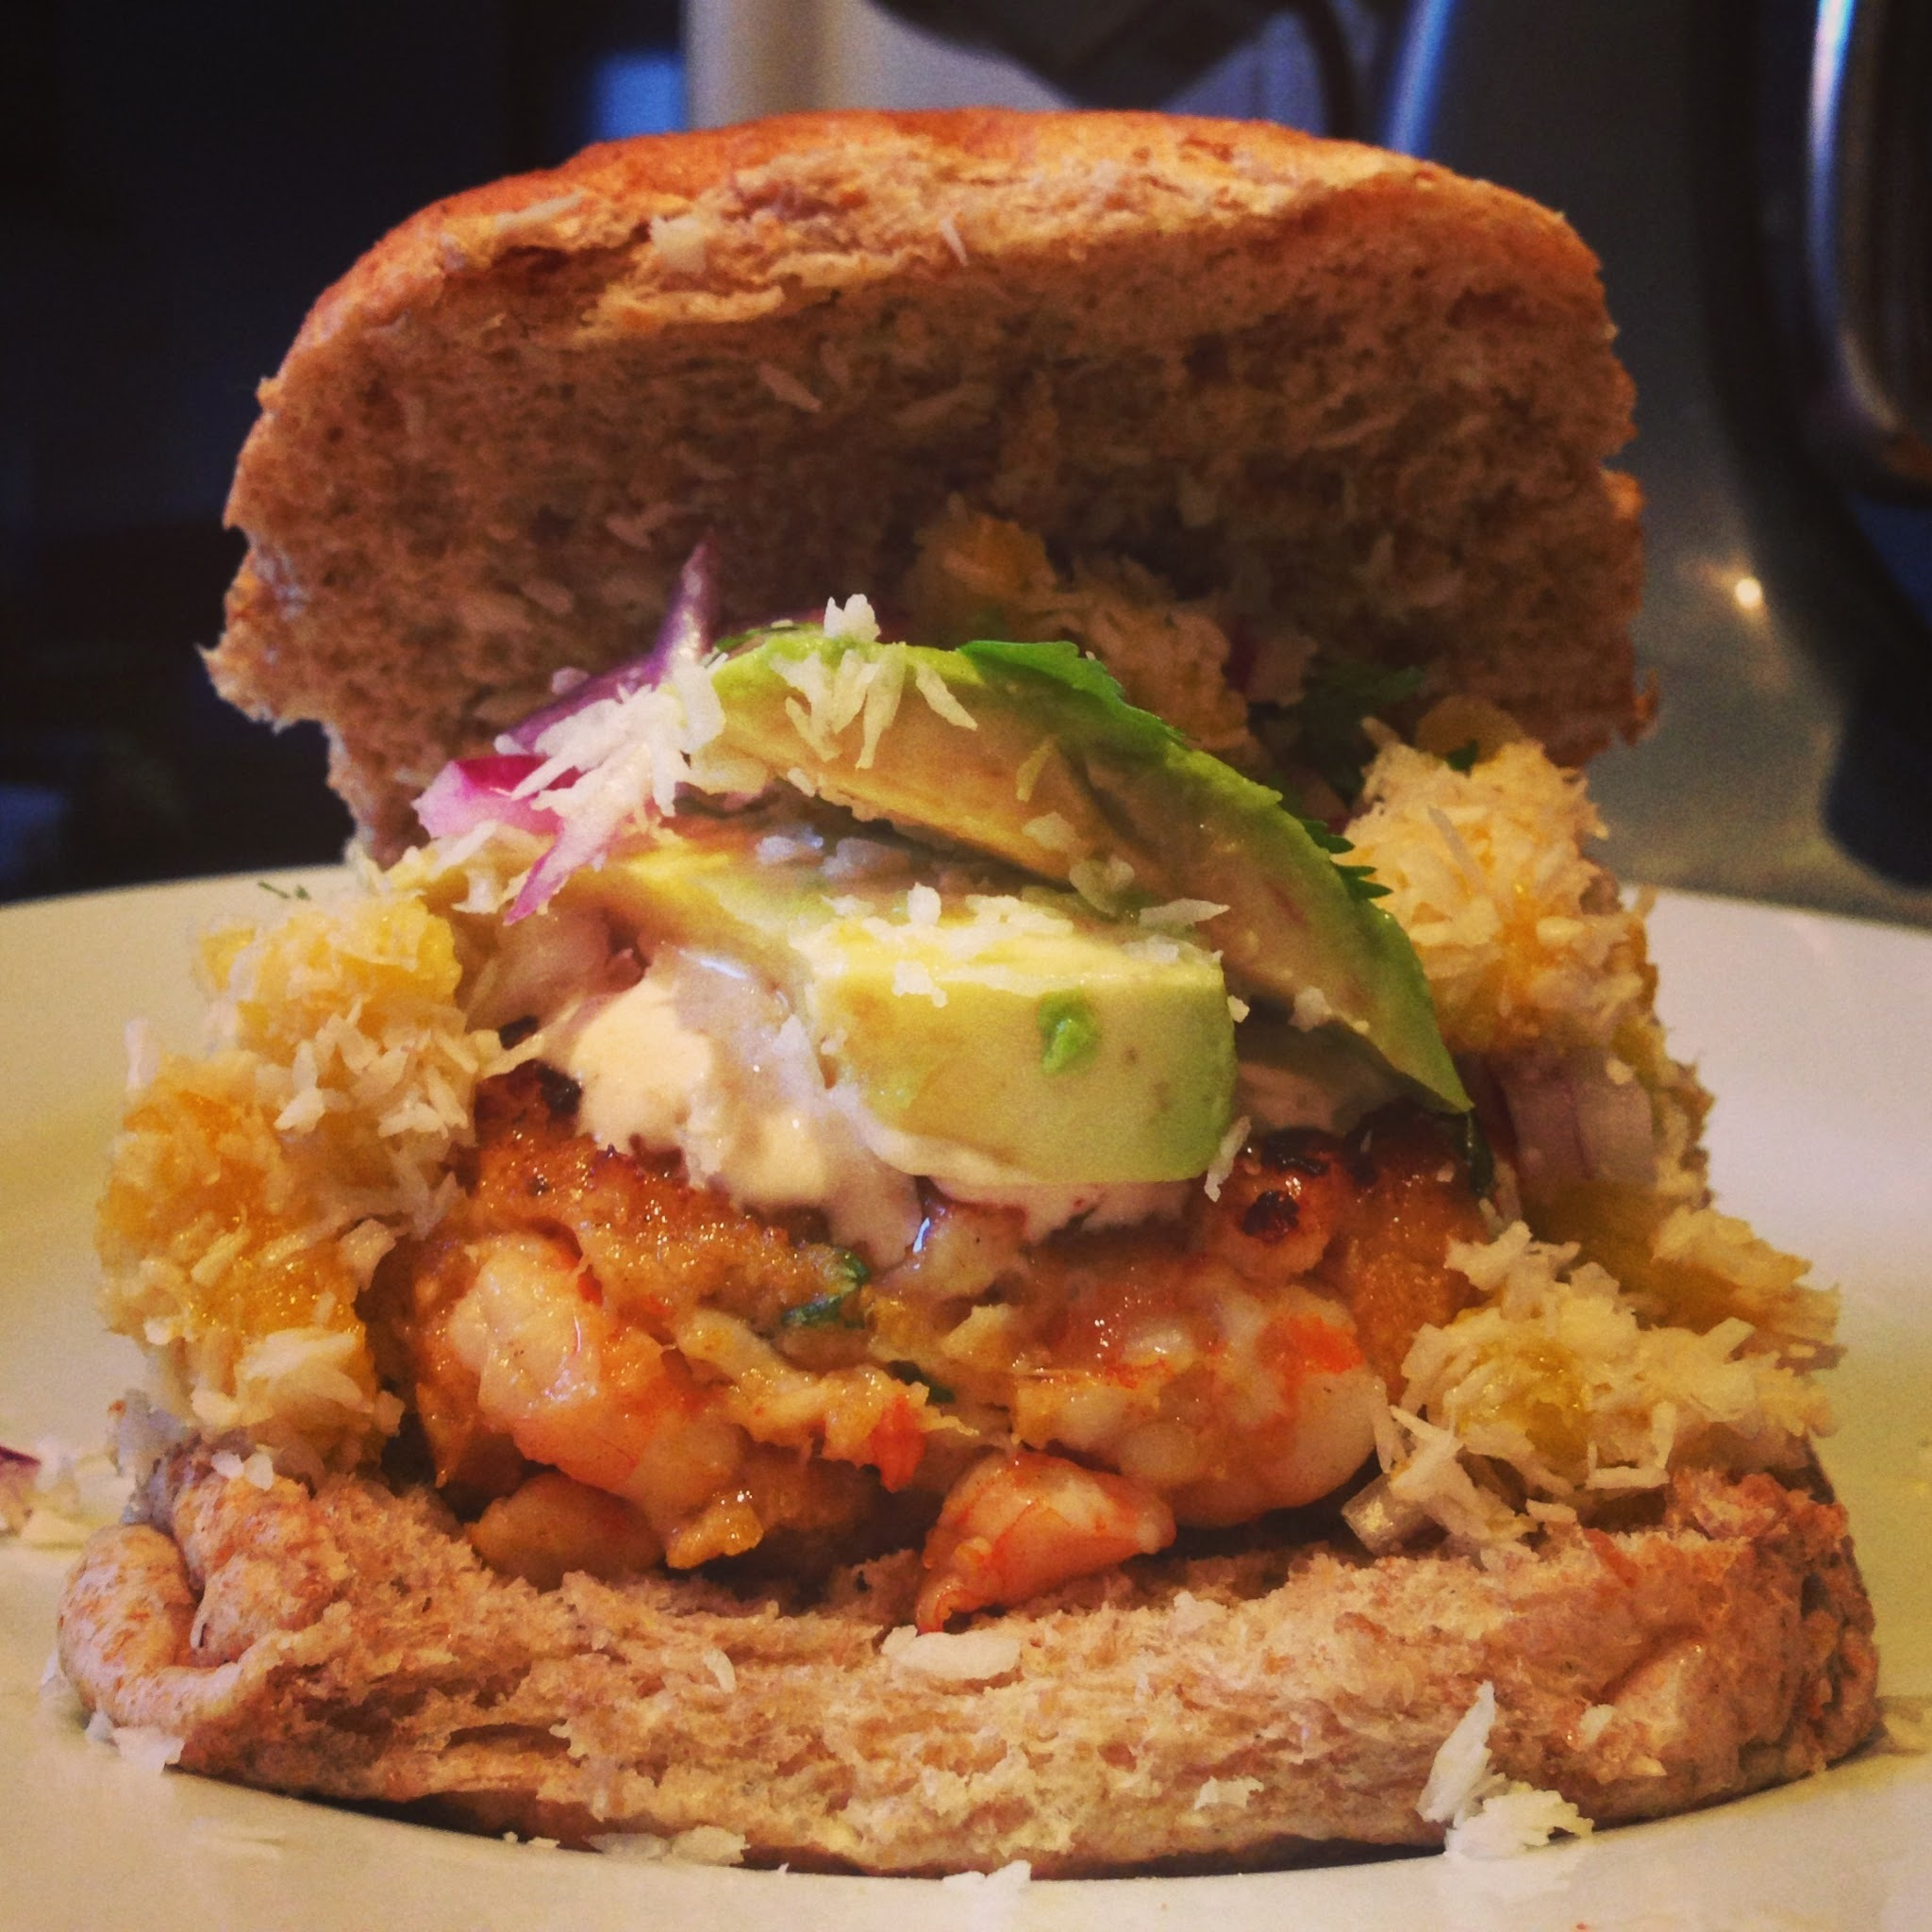 Throwback Thursday: Prawn burger with chipotle cream and coconut & peach salsa